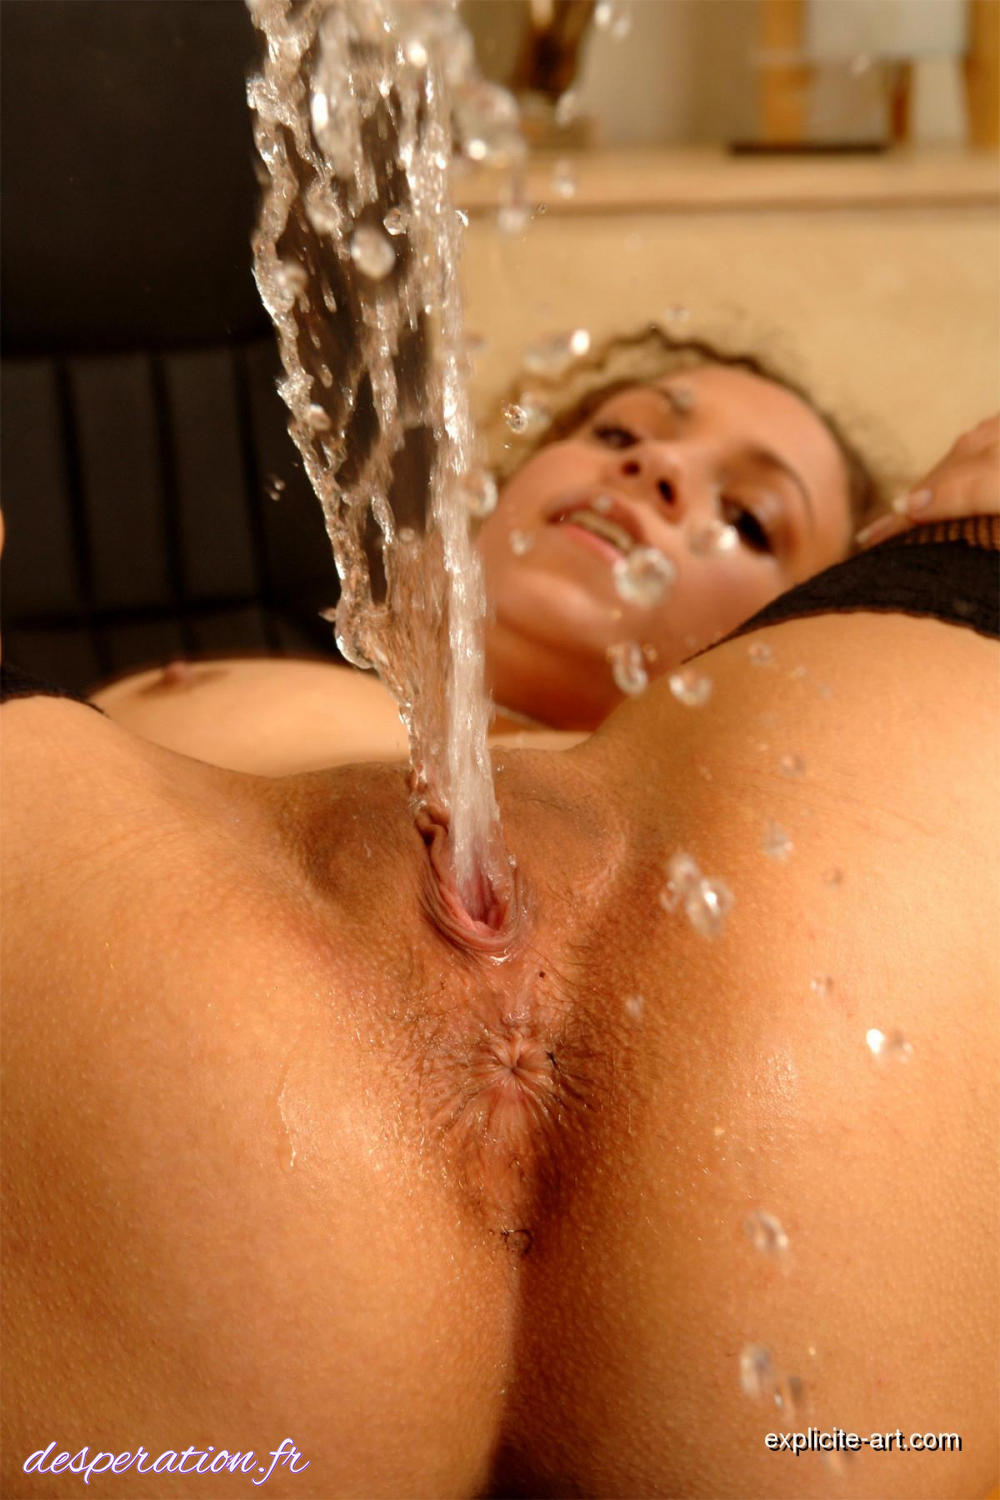 orgasm-from-water-videos-download-keeley-sex-video